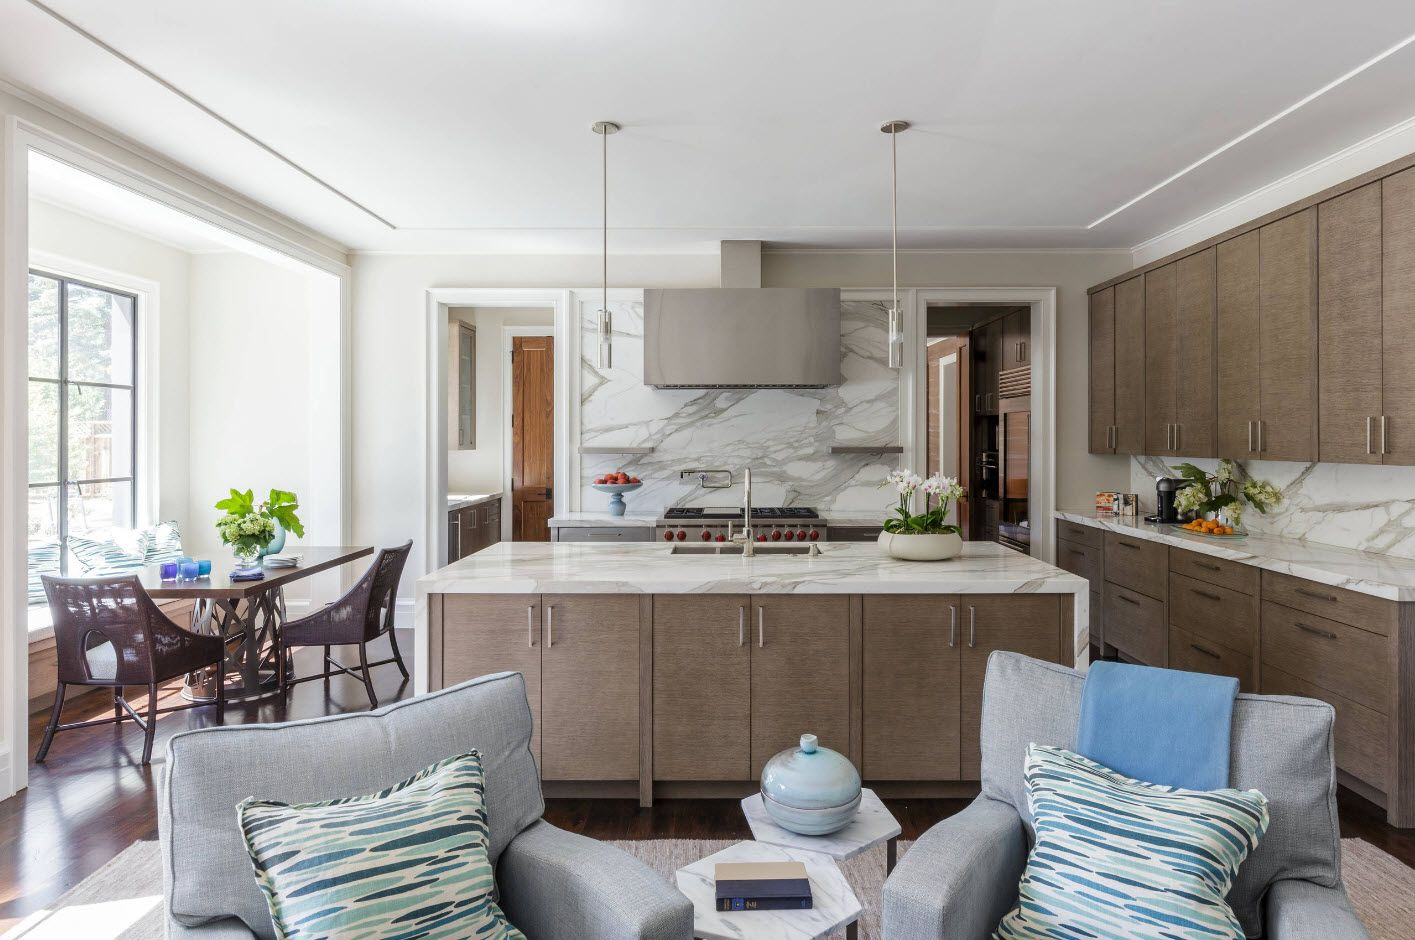 100+ Photo Design Ideas of Modern, Comfortable IKEA Kitchens. Color mix in the open layout studio room